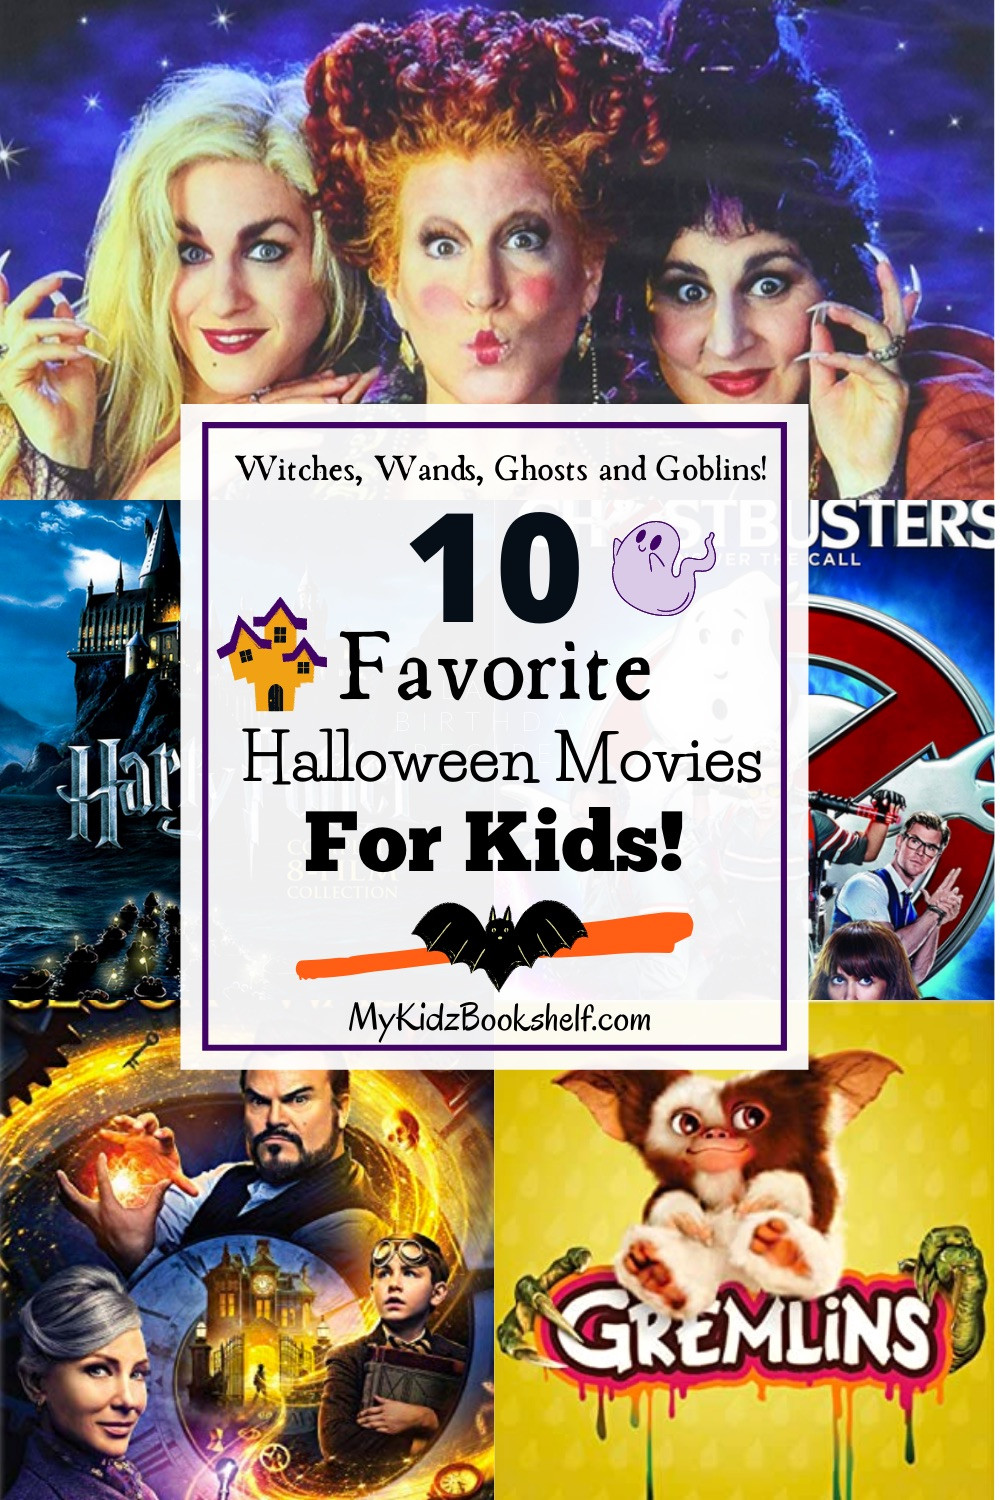 10 Favorite Halloween Movies for Kids movie posters Hocus Pocus, Harry Potter, ghostbusters